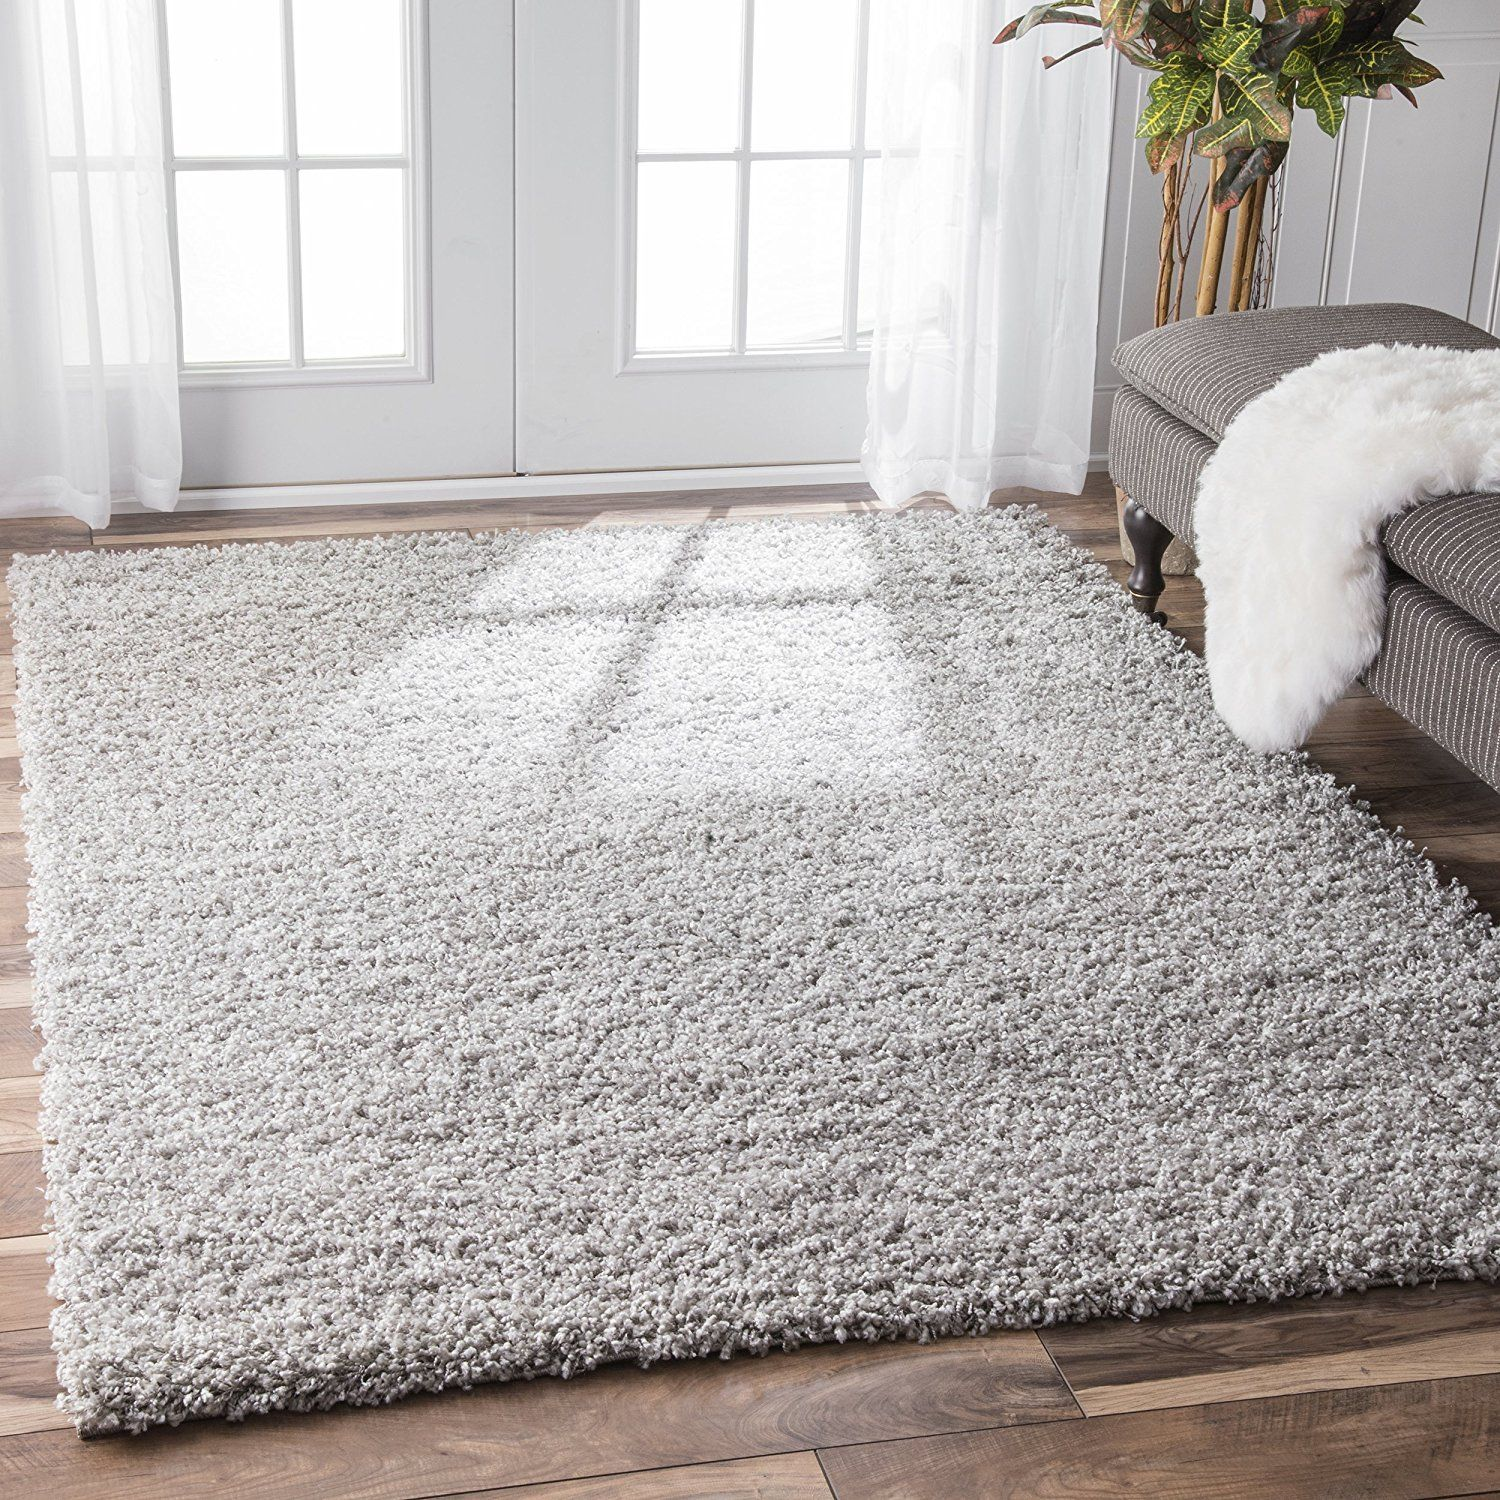 Rugs Online Sale Plush Shag Area Rugs Affiliate Link Inexpensive Rugs Rugs Area